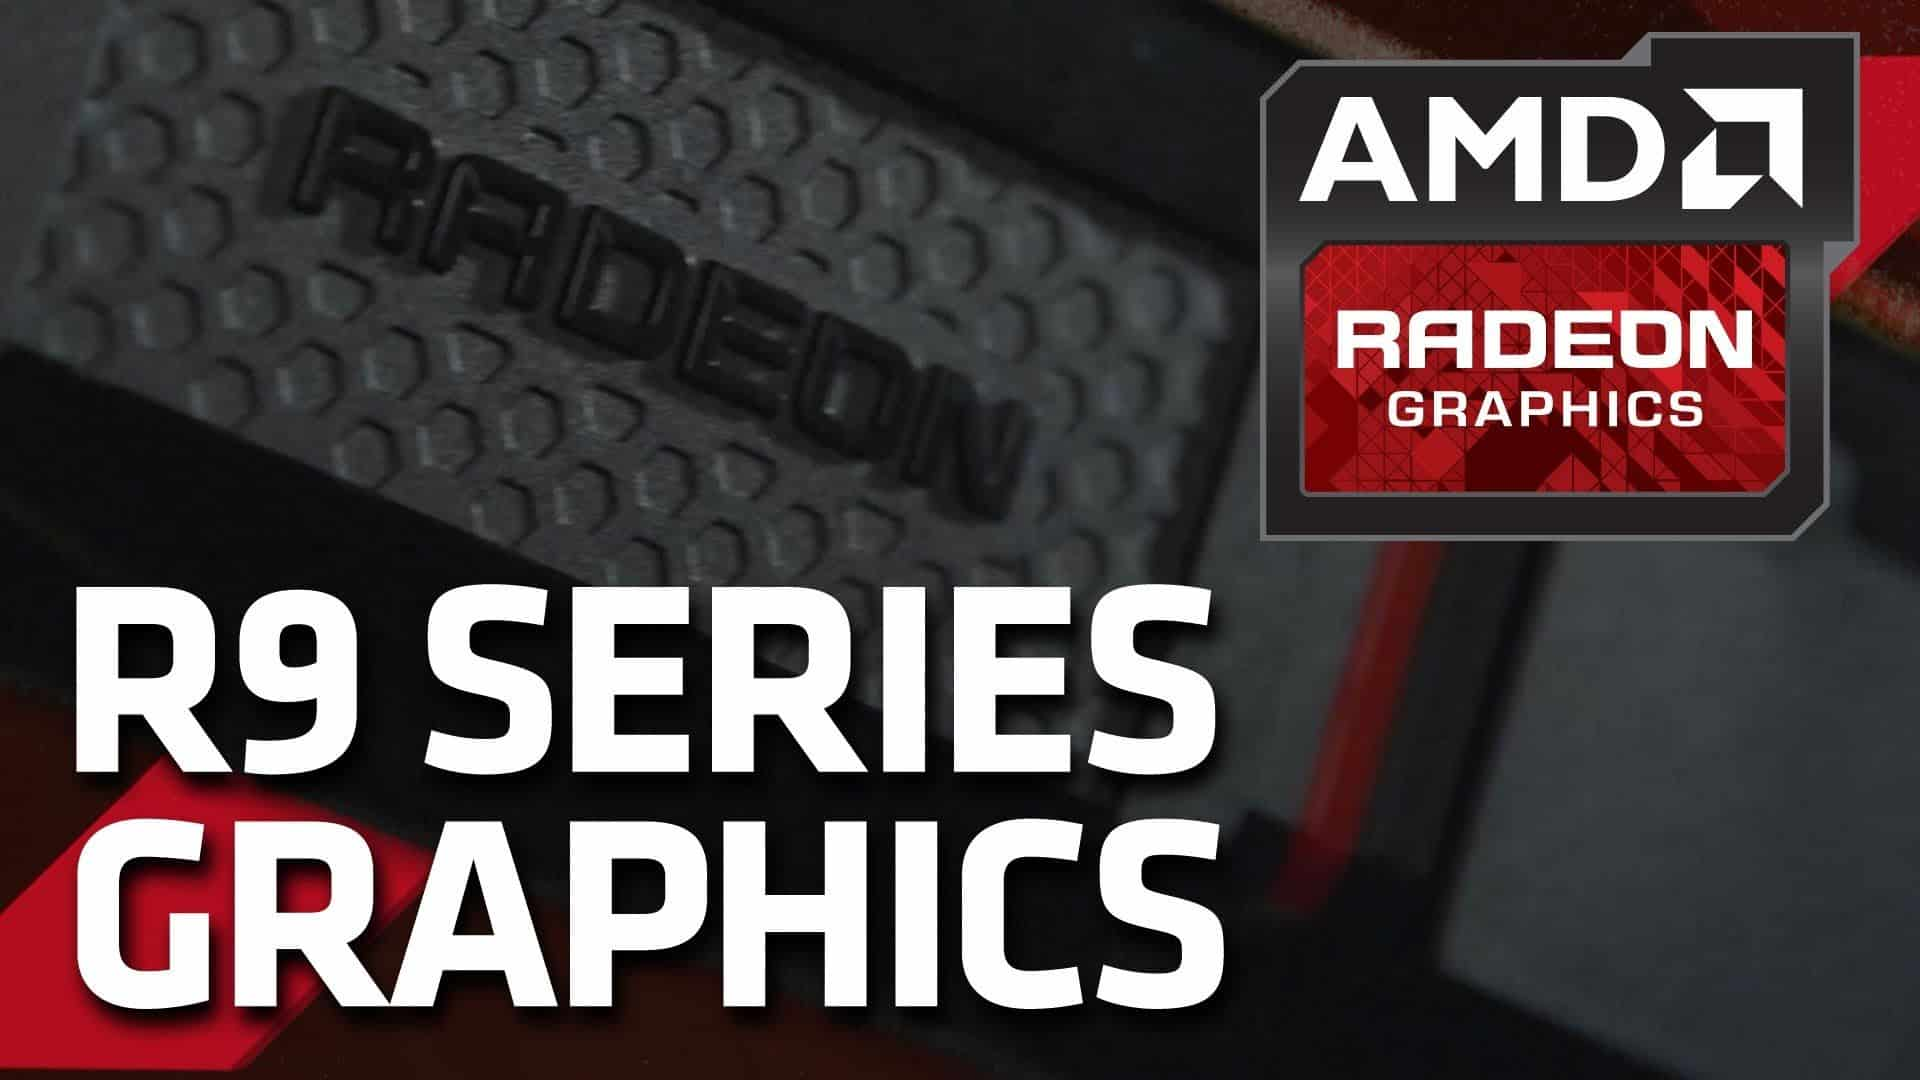 Amd Software R9 200  How Do I Find Which